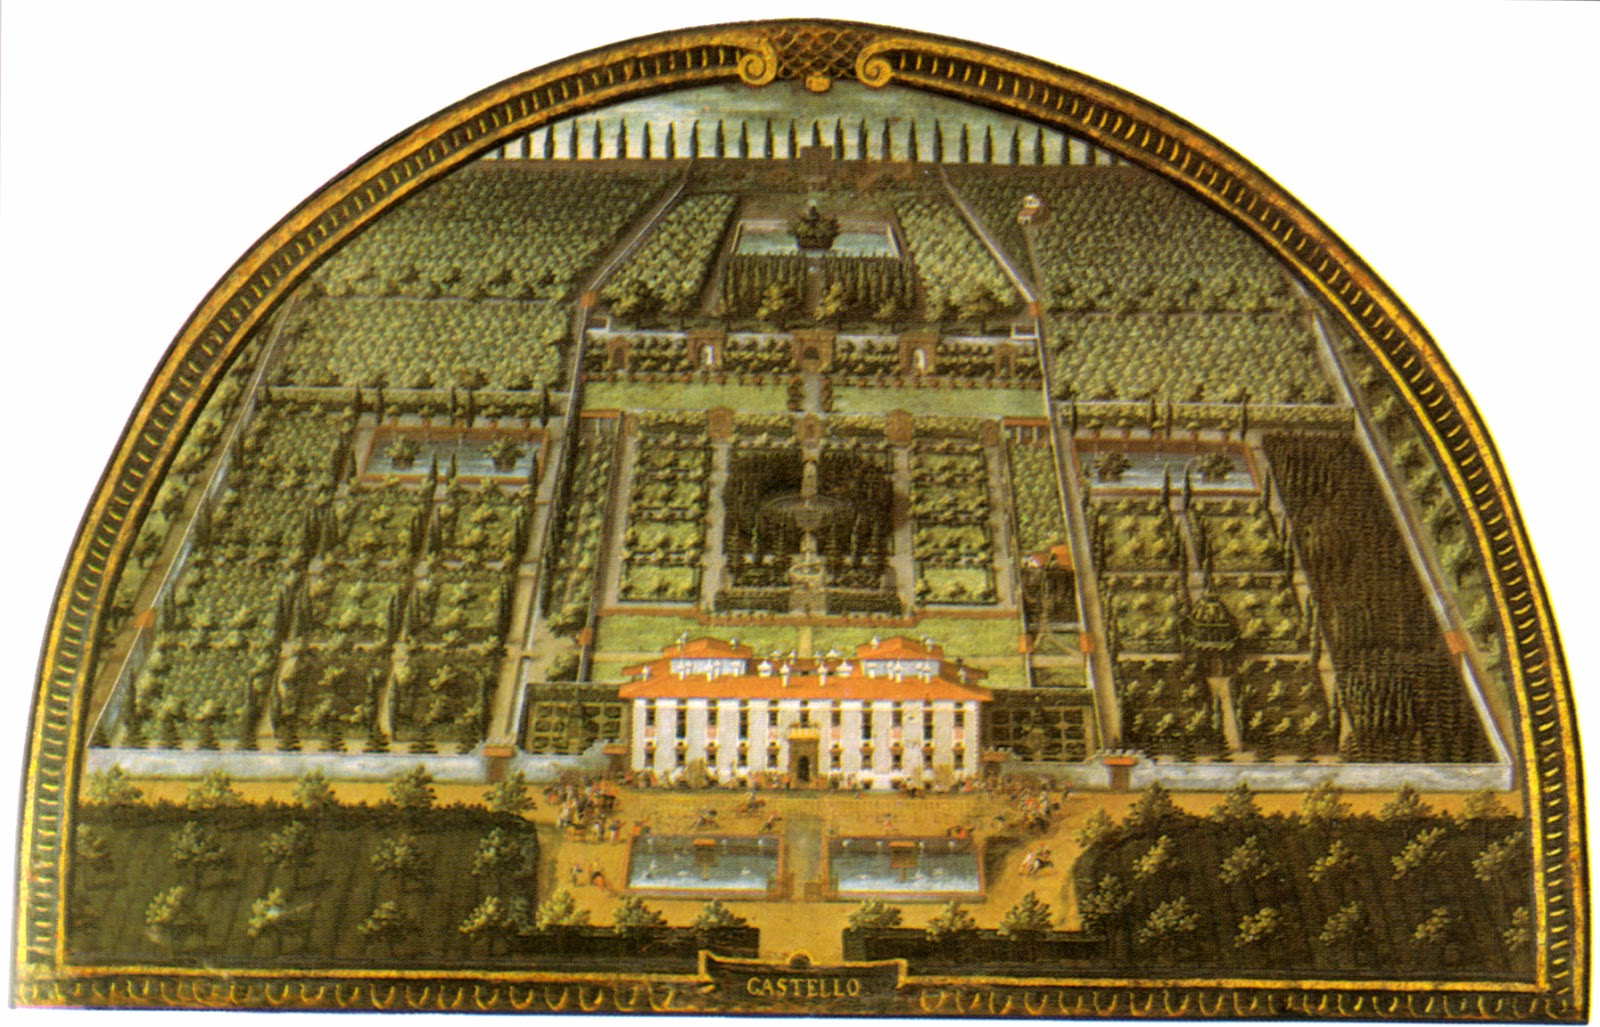 Lunette of Villa di Castello as it appeared in 1599, painted by Giusto Utens